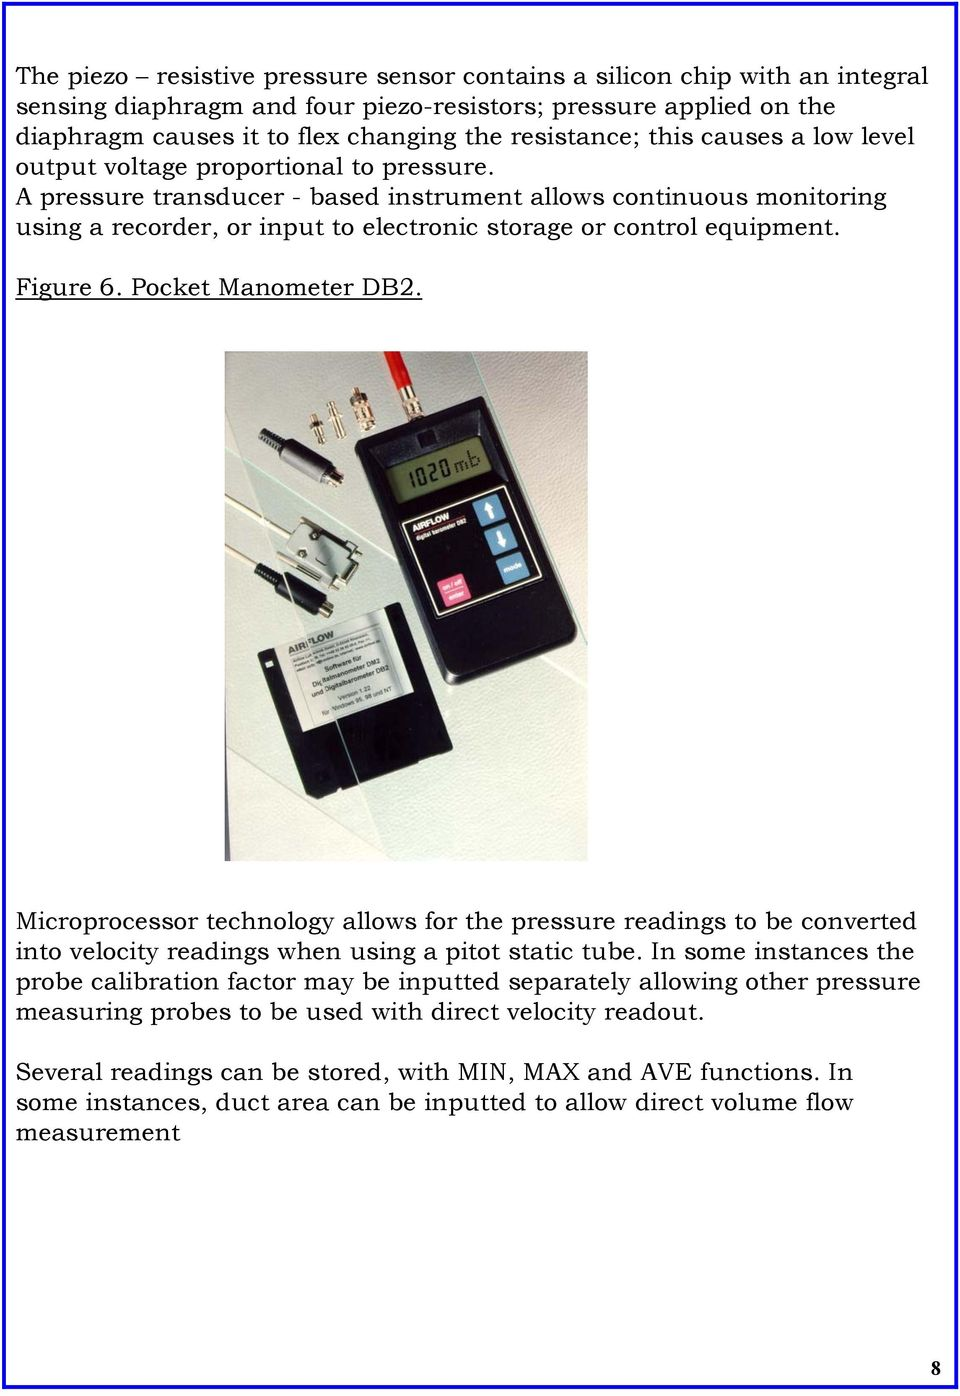 A pressure transducer - based instrument allows continuous monitoring using a recorder, or input to electronic storage or control equipment. Figure 6. Pocket Manometer DB2.